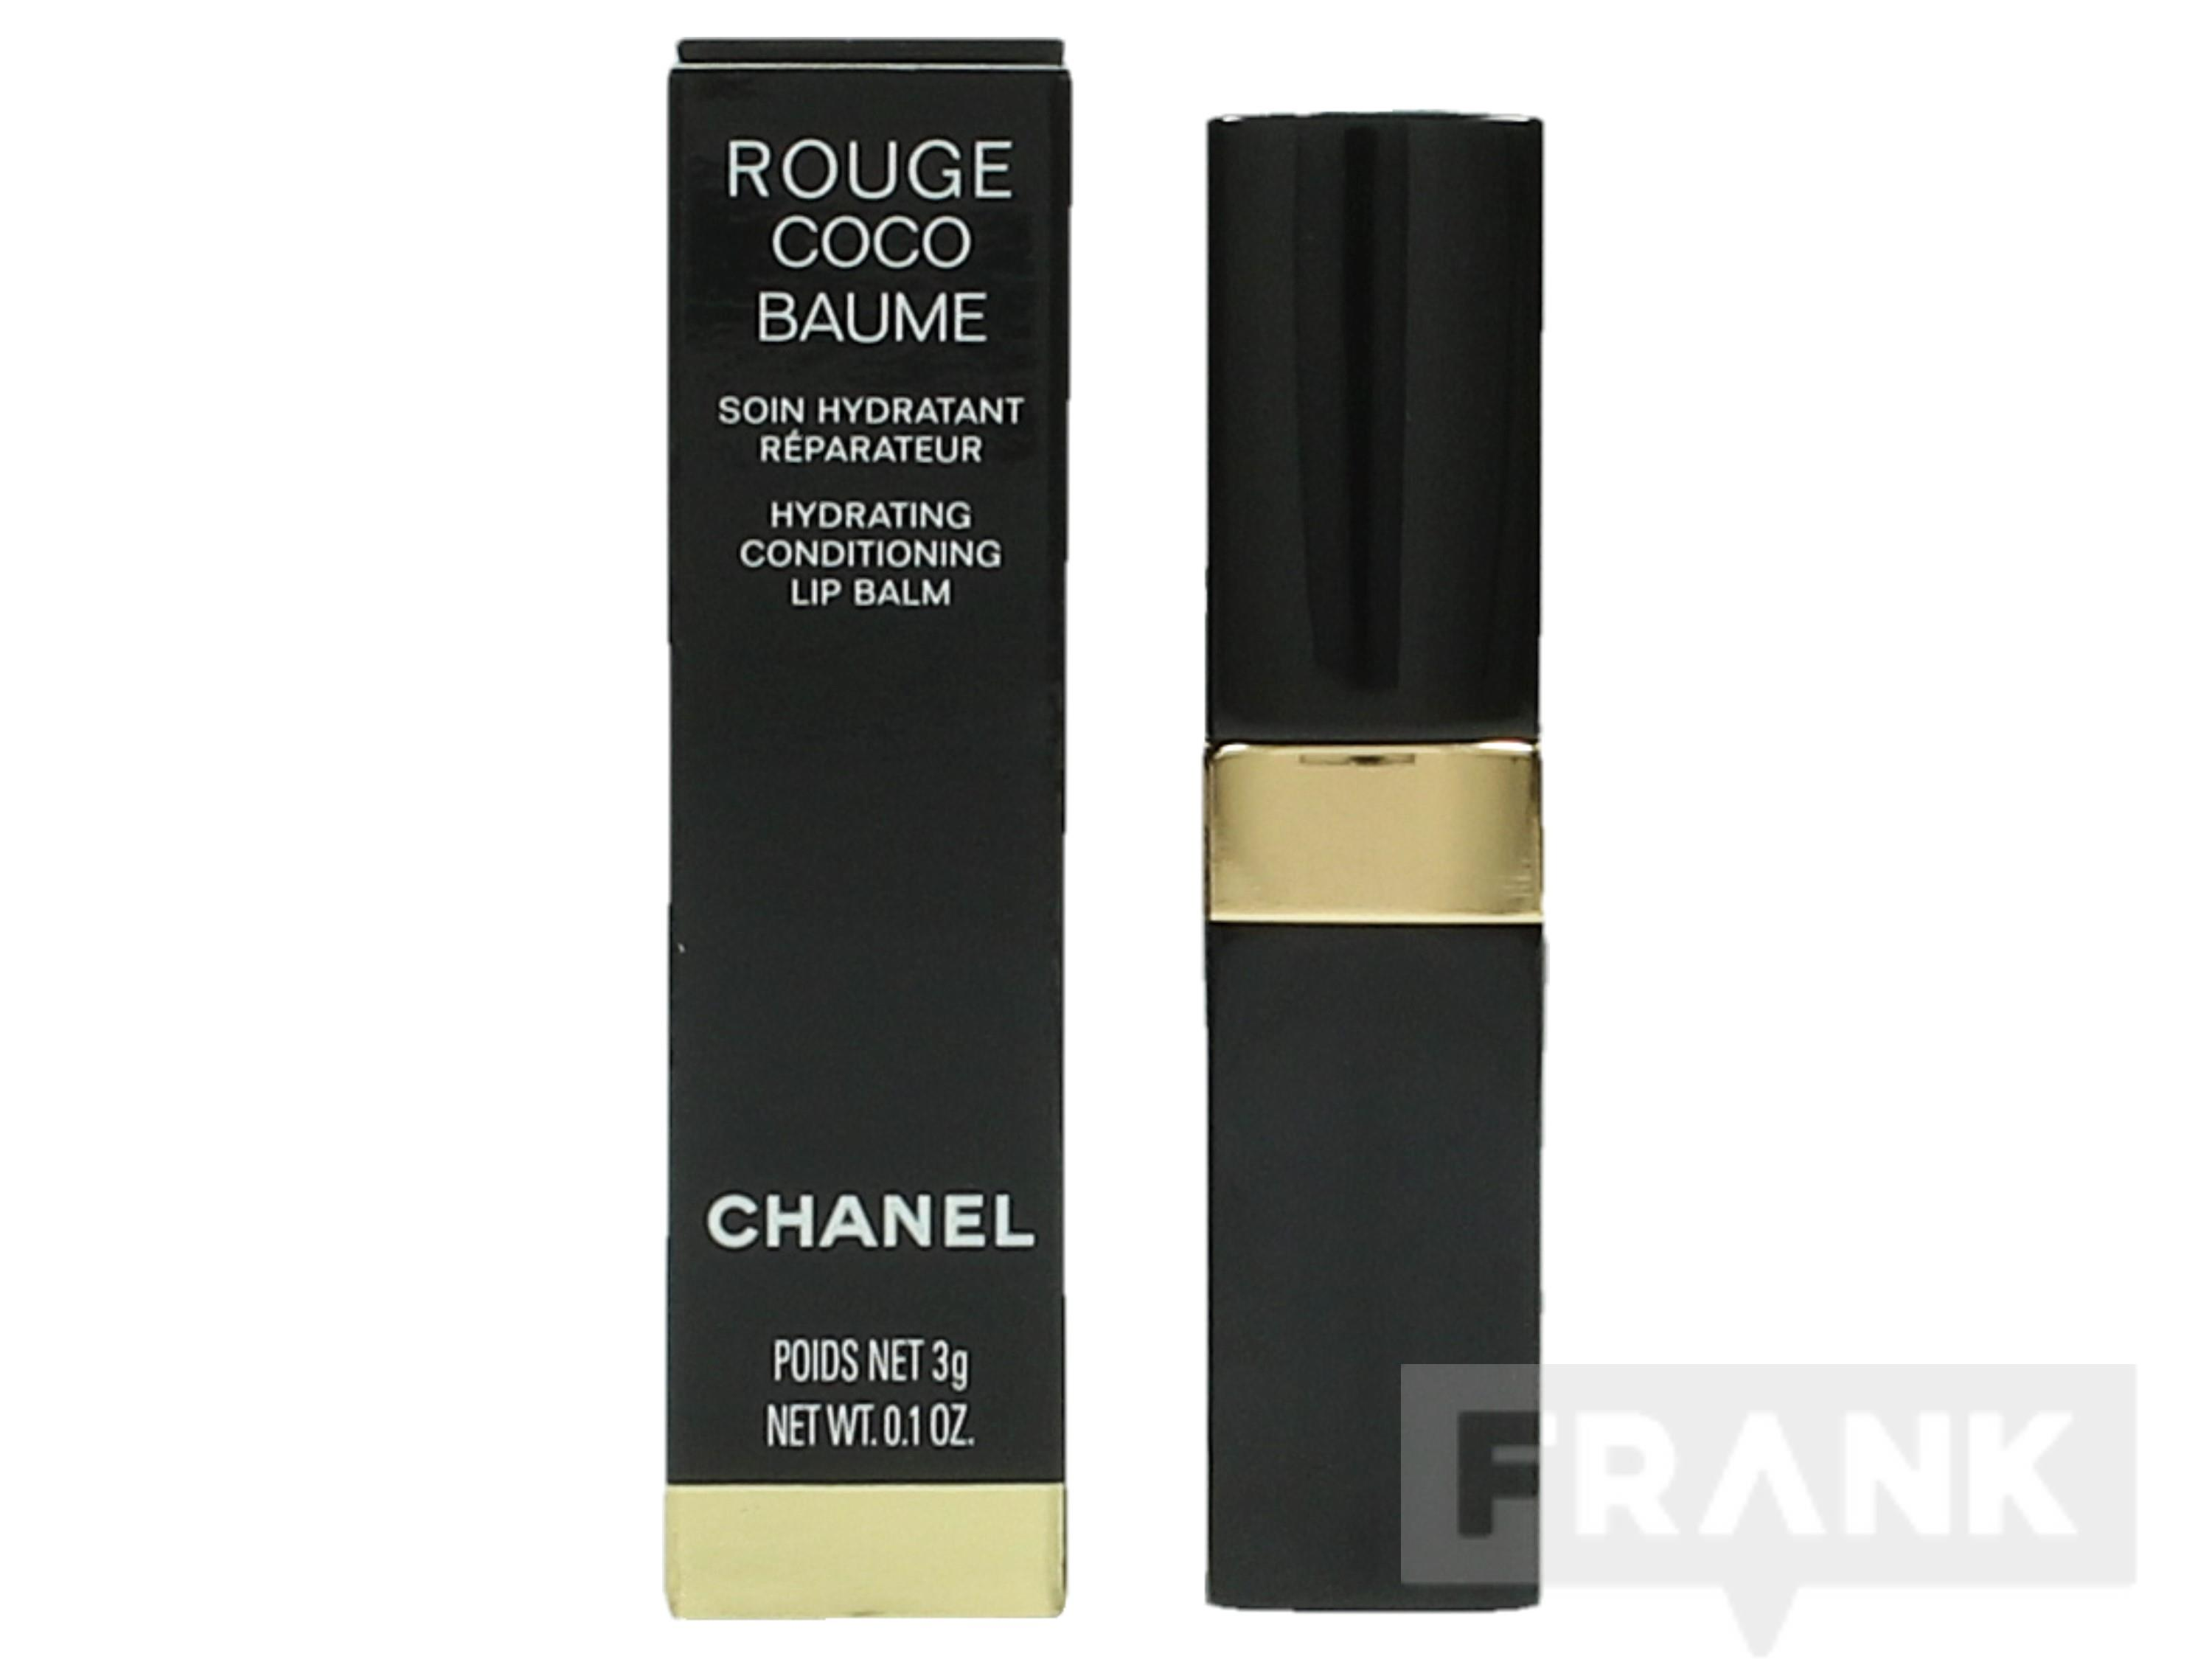 Chanel Rouge Coco Baume Hyd. Conditioning Lip Balm 3gr